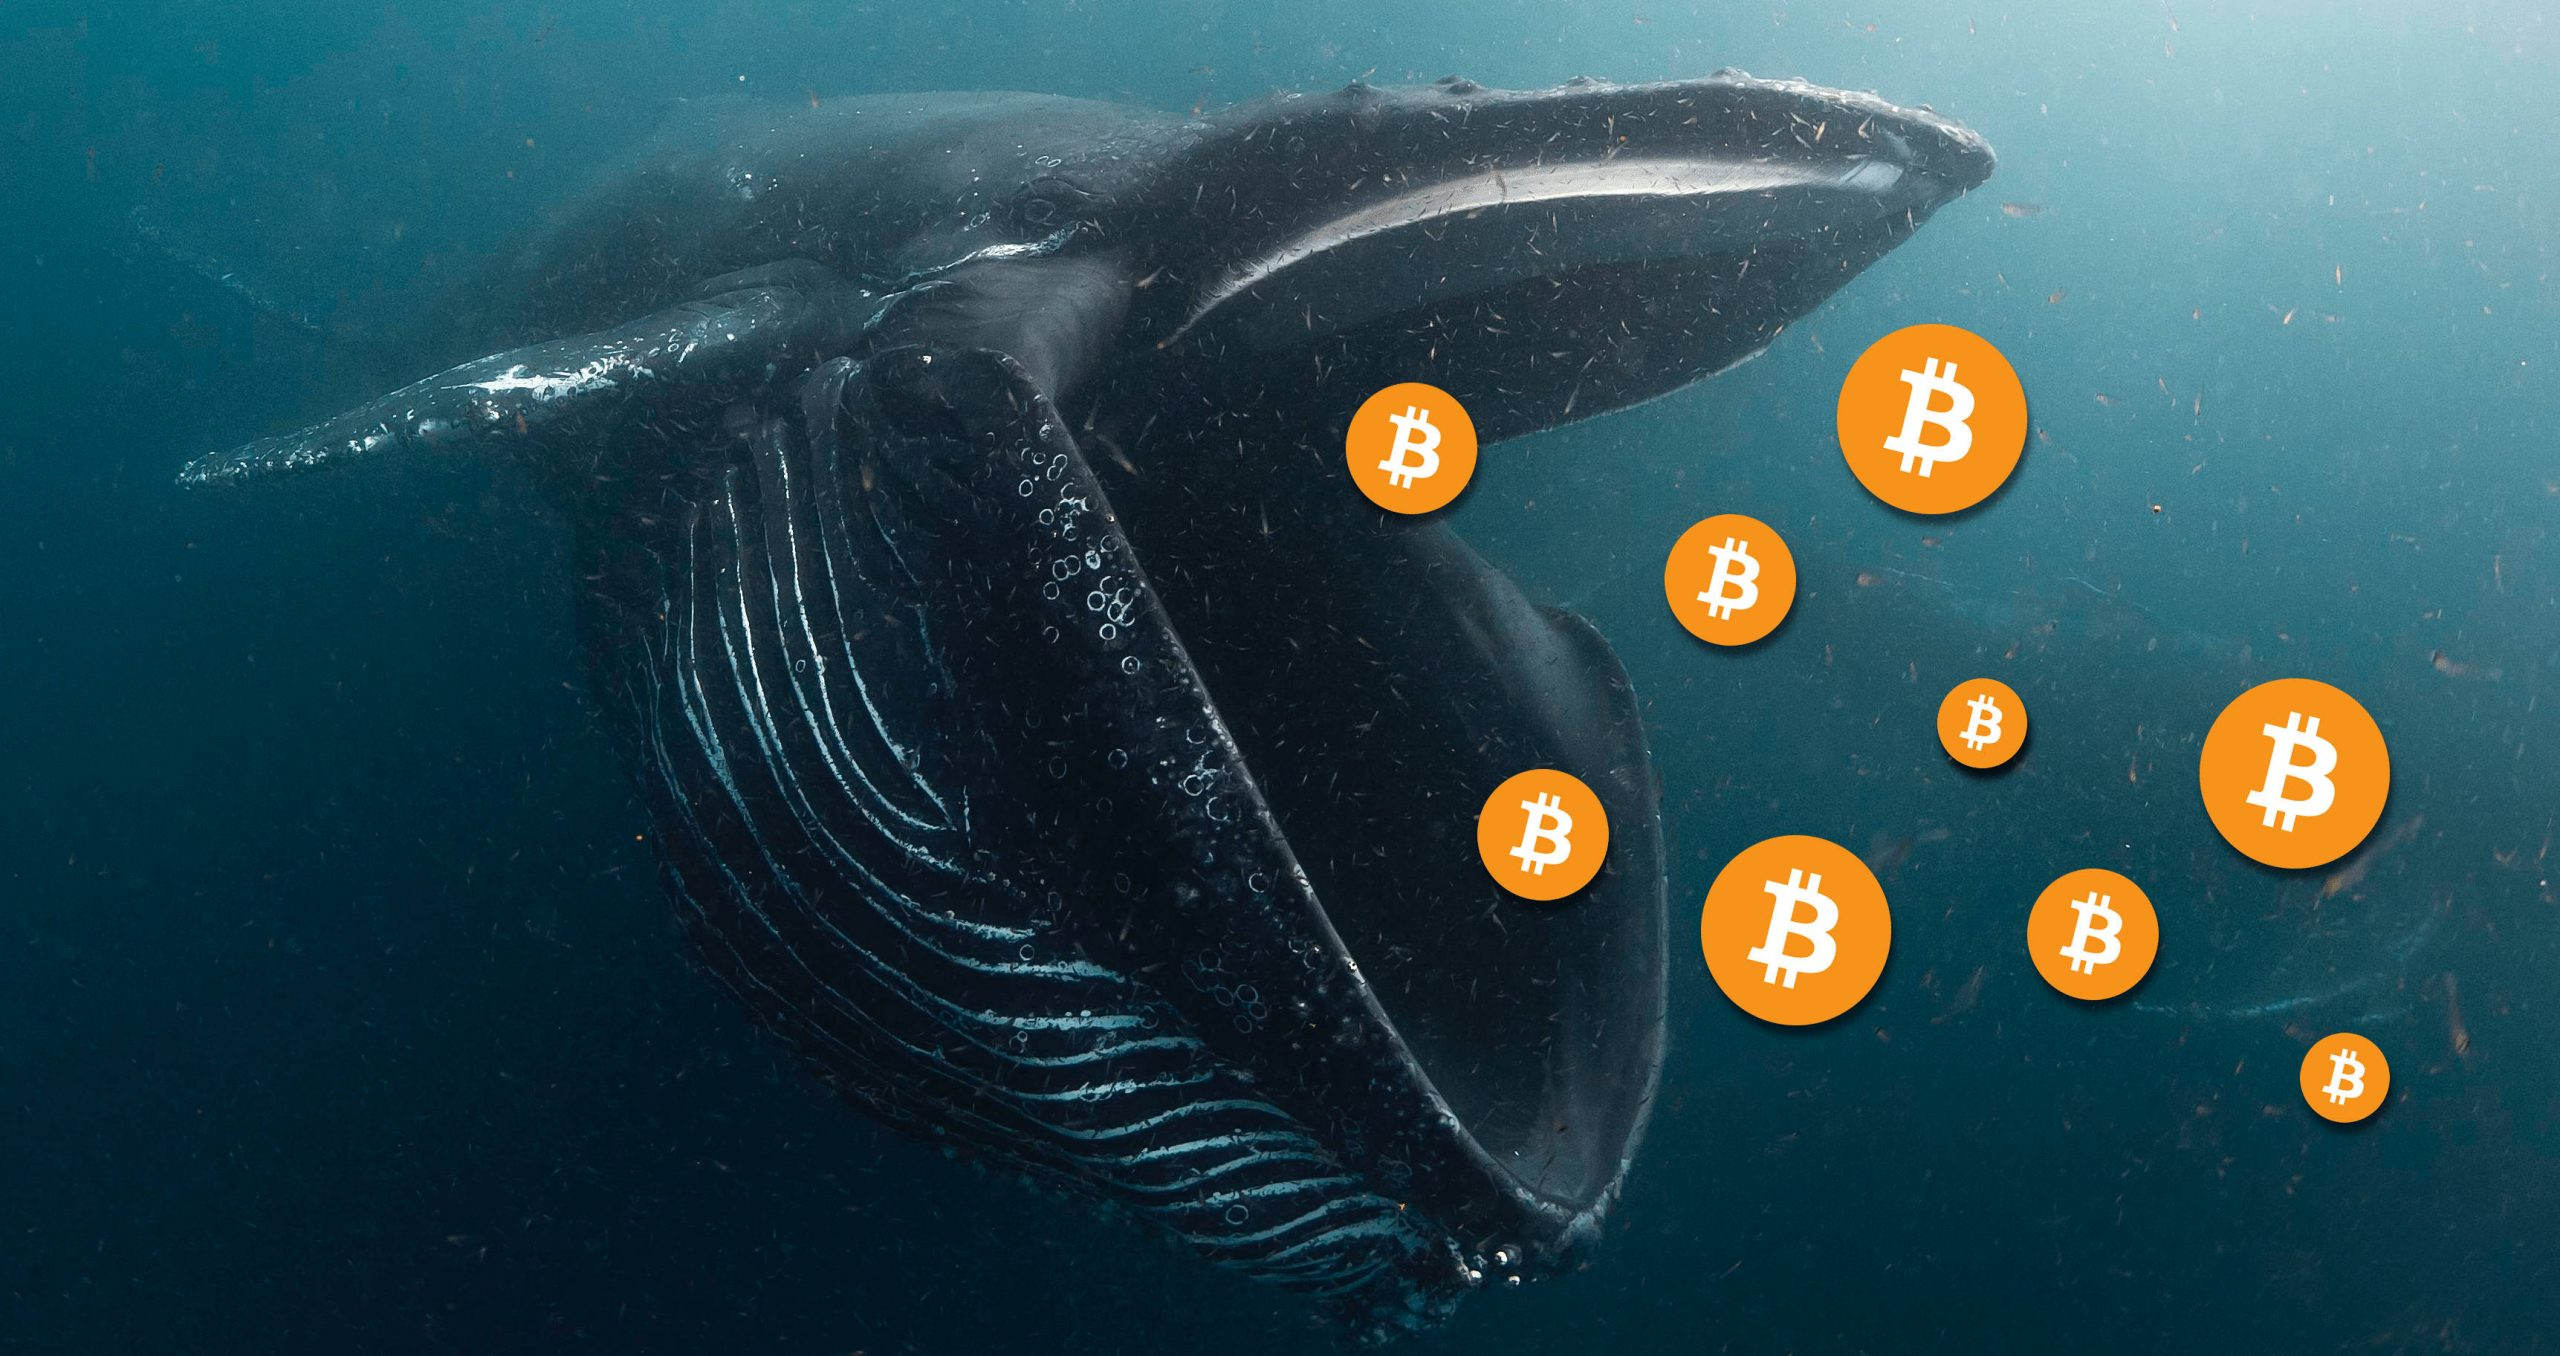 Whales boost bitcoins